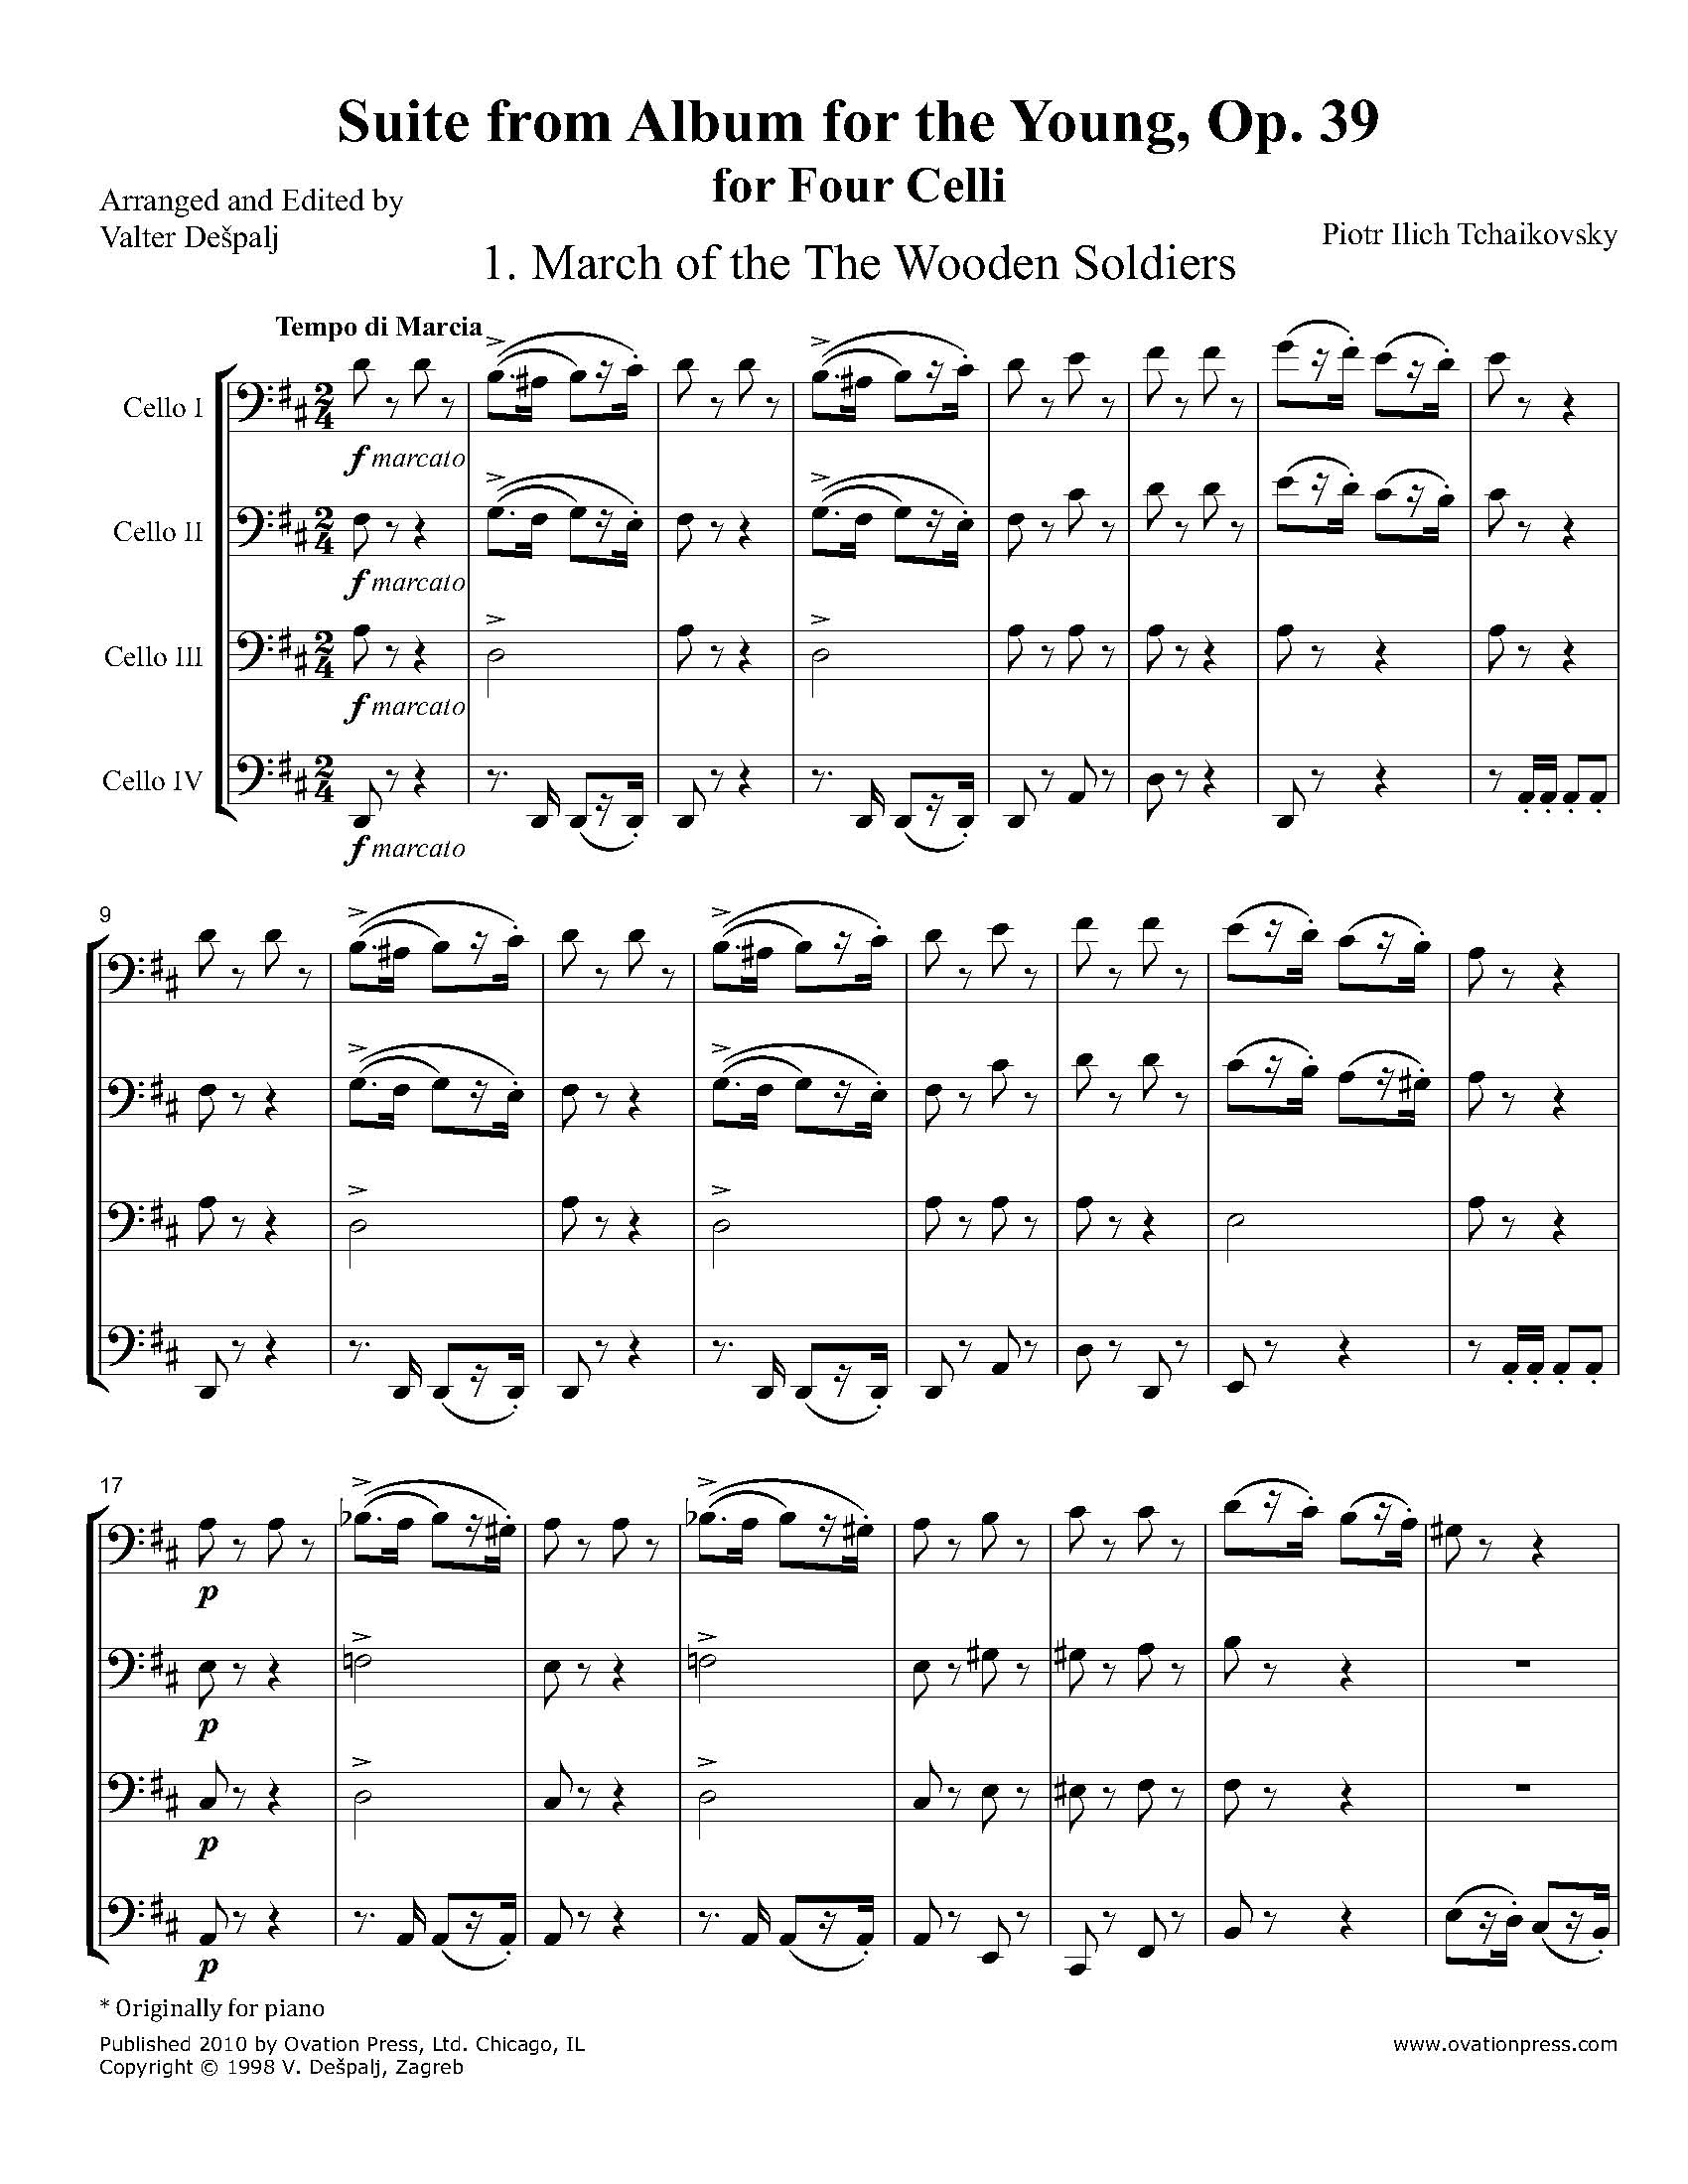 Suite from Album for the Young, Op. 39 (for 4 celli)